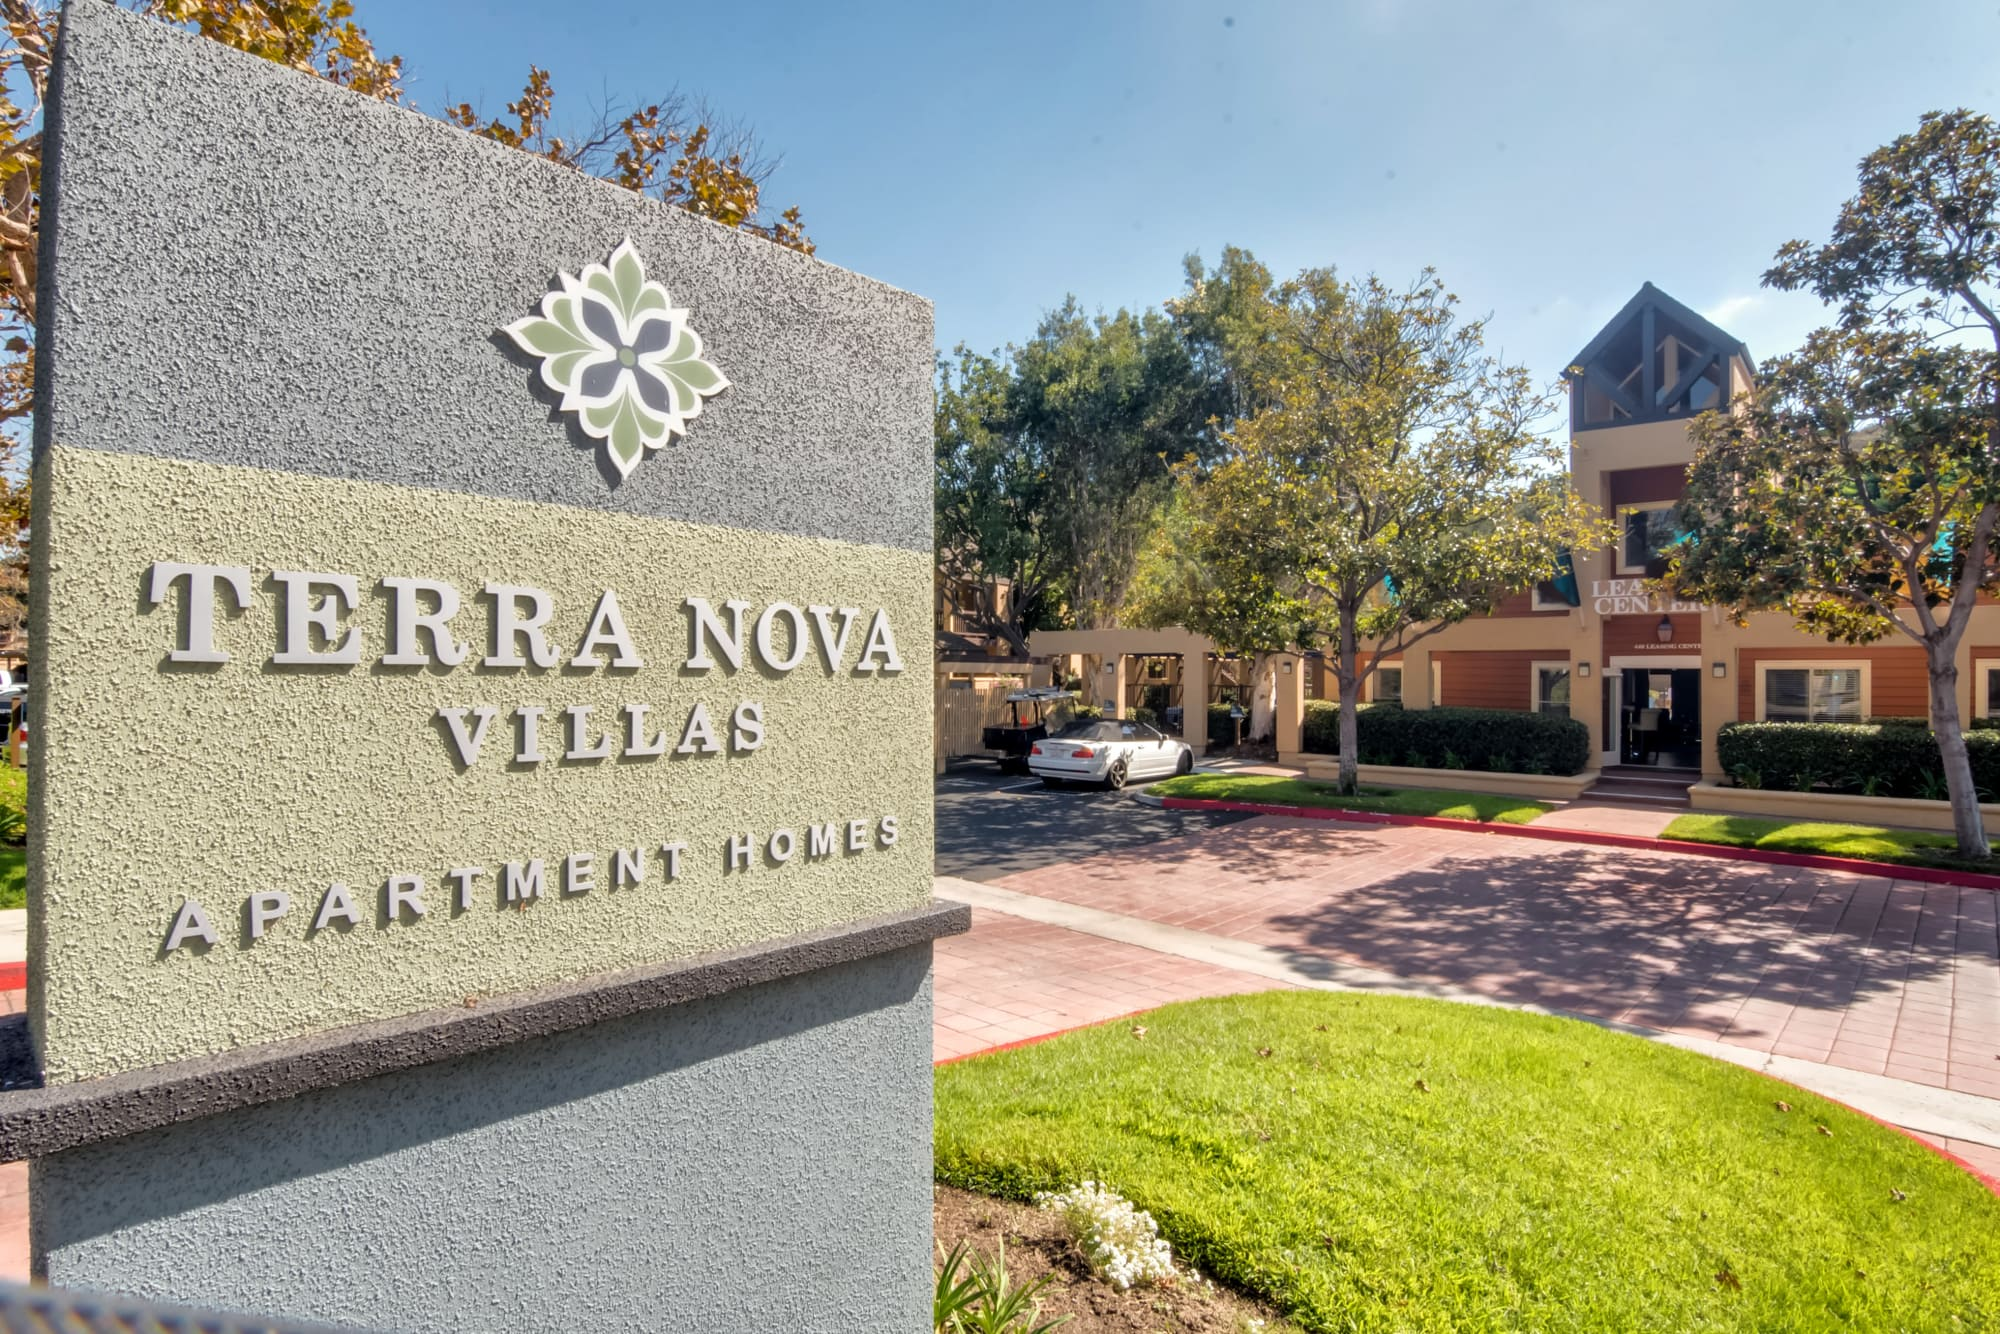 Entrance Monument Sign at Terra Nova Villas in Chula Vista, CA